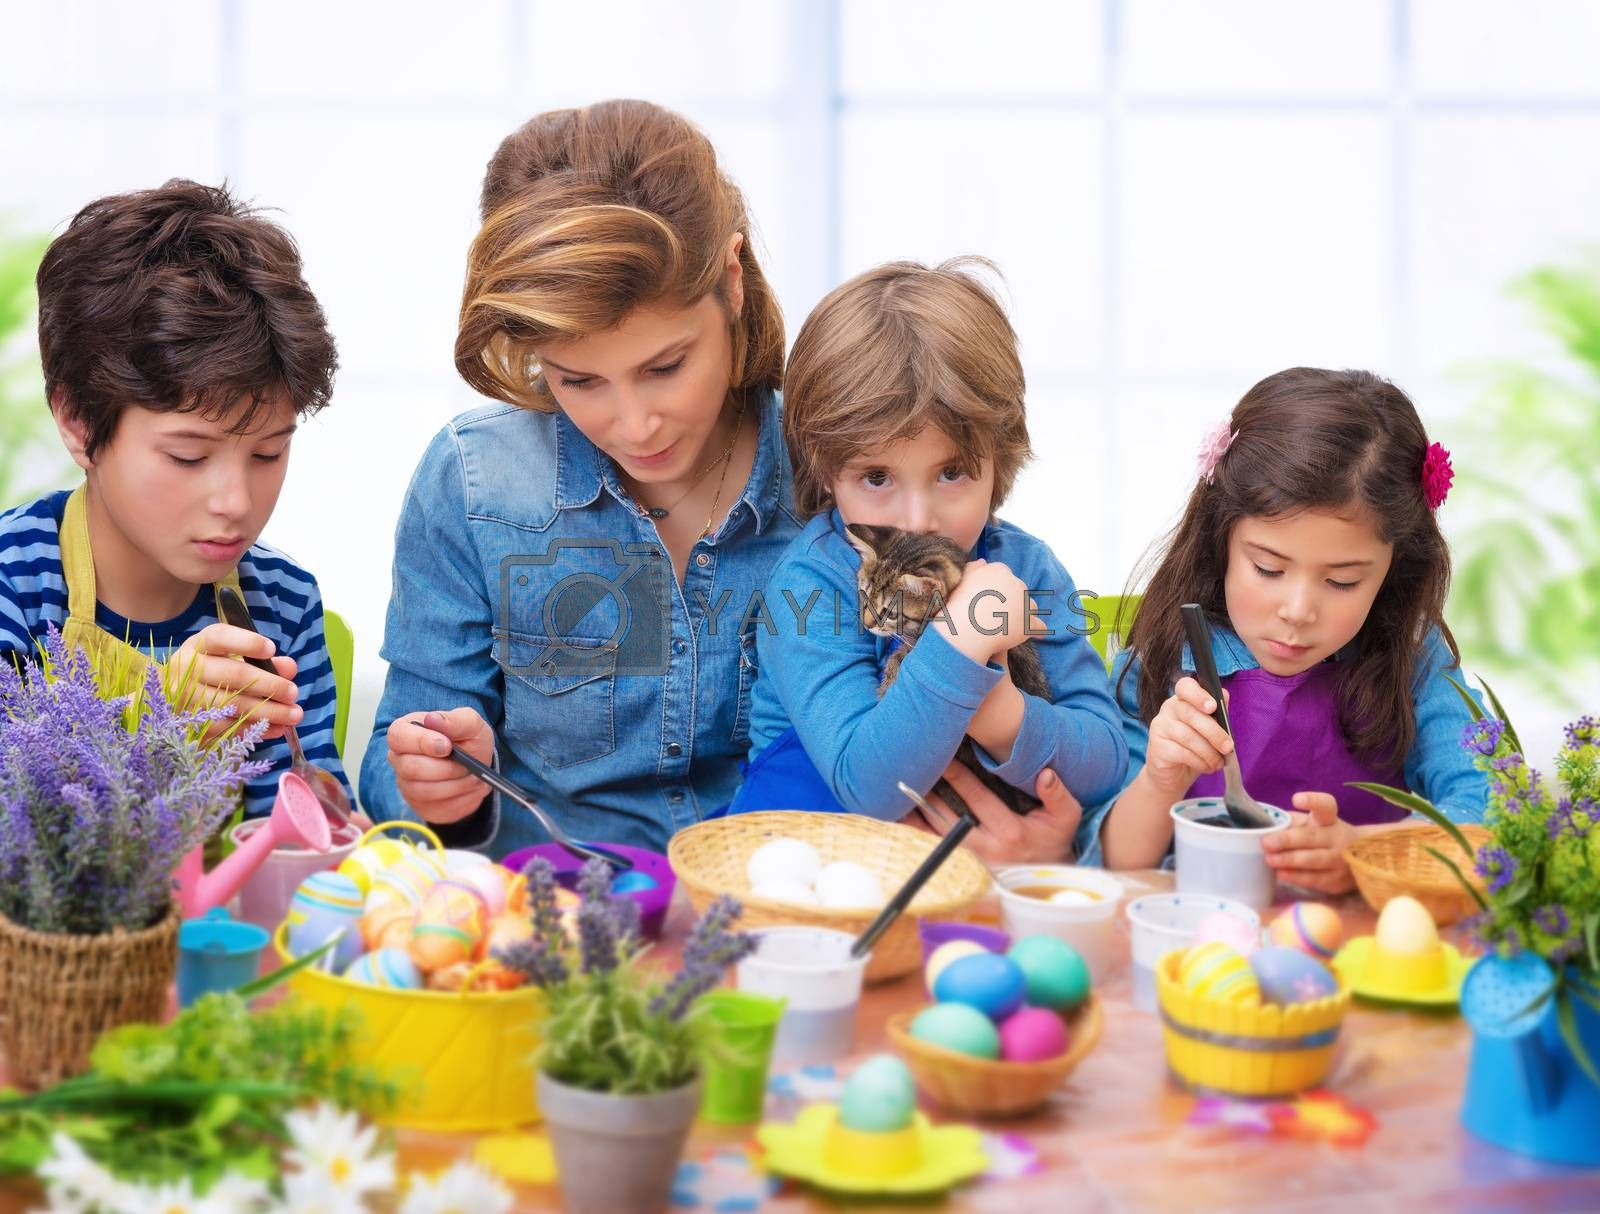 Family portrait in Easter time, creative mother with three cute adorable child coloring eggs at home, making vibrant colorful traditional food